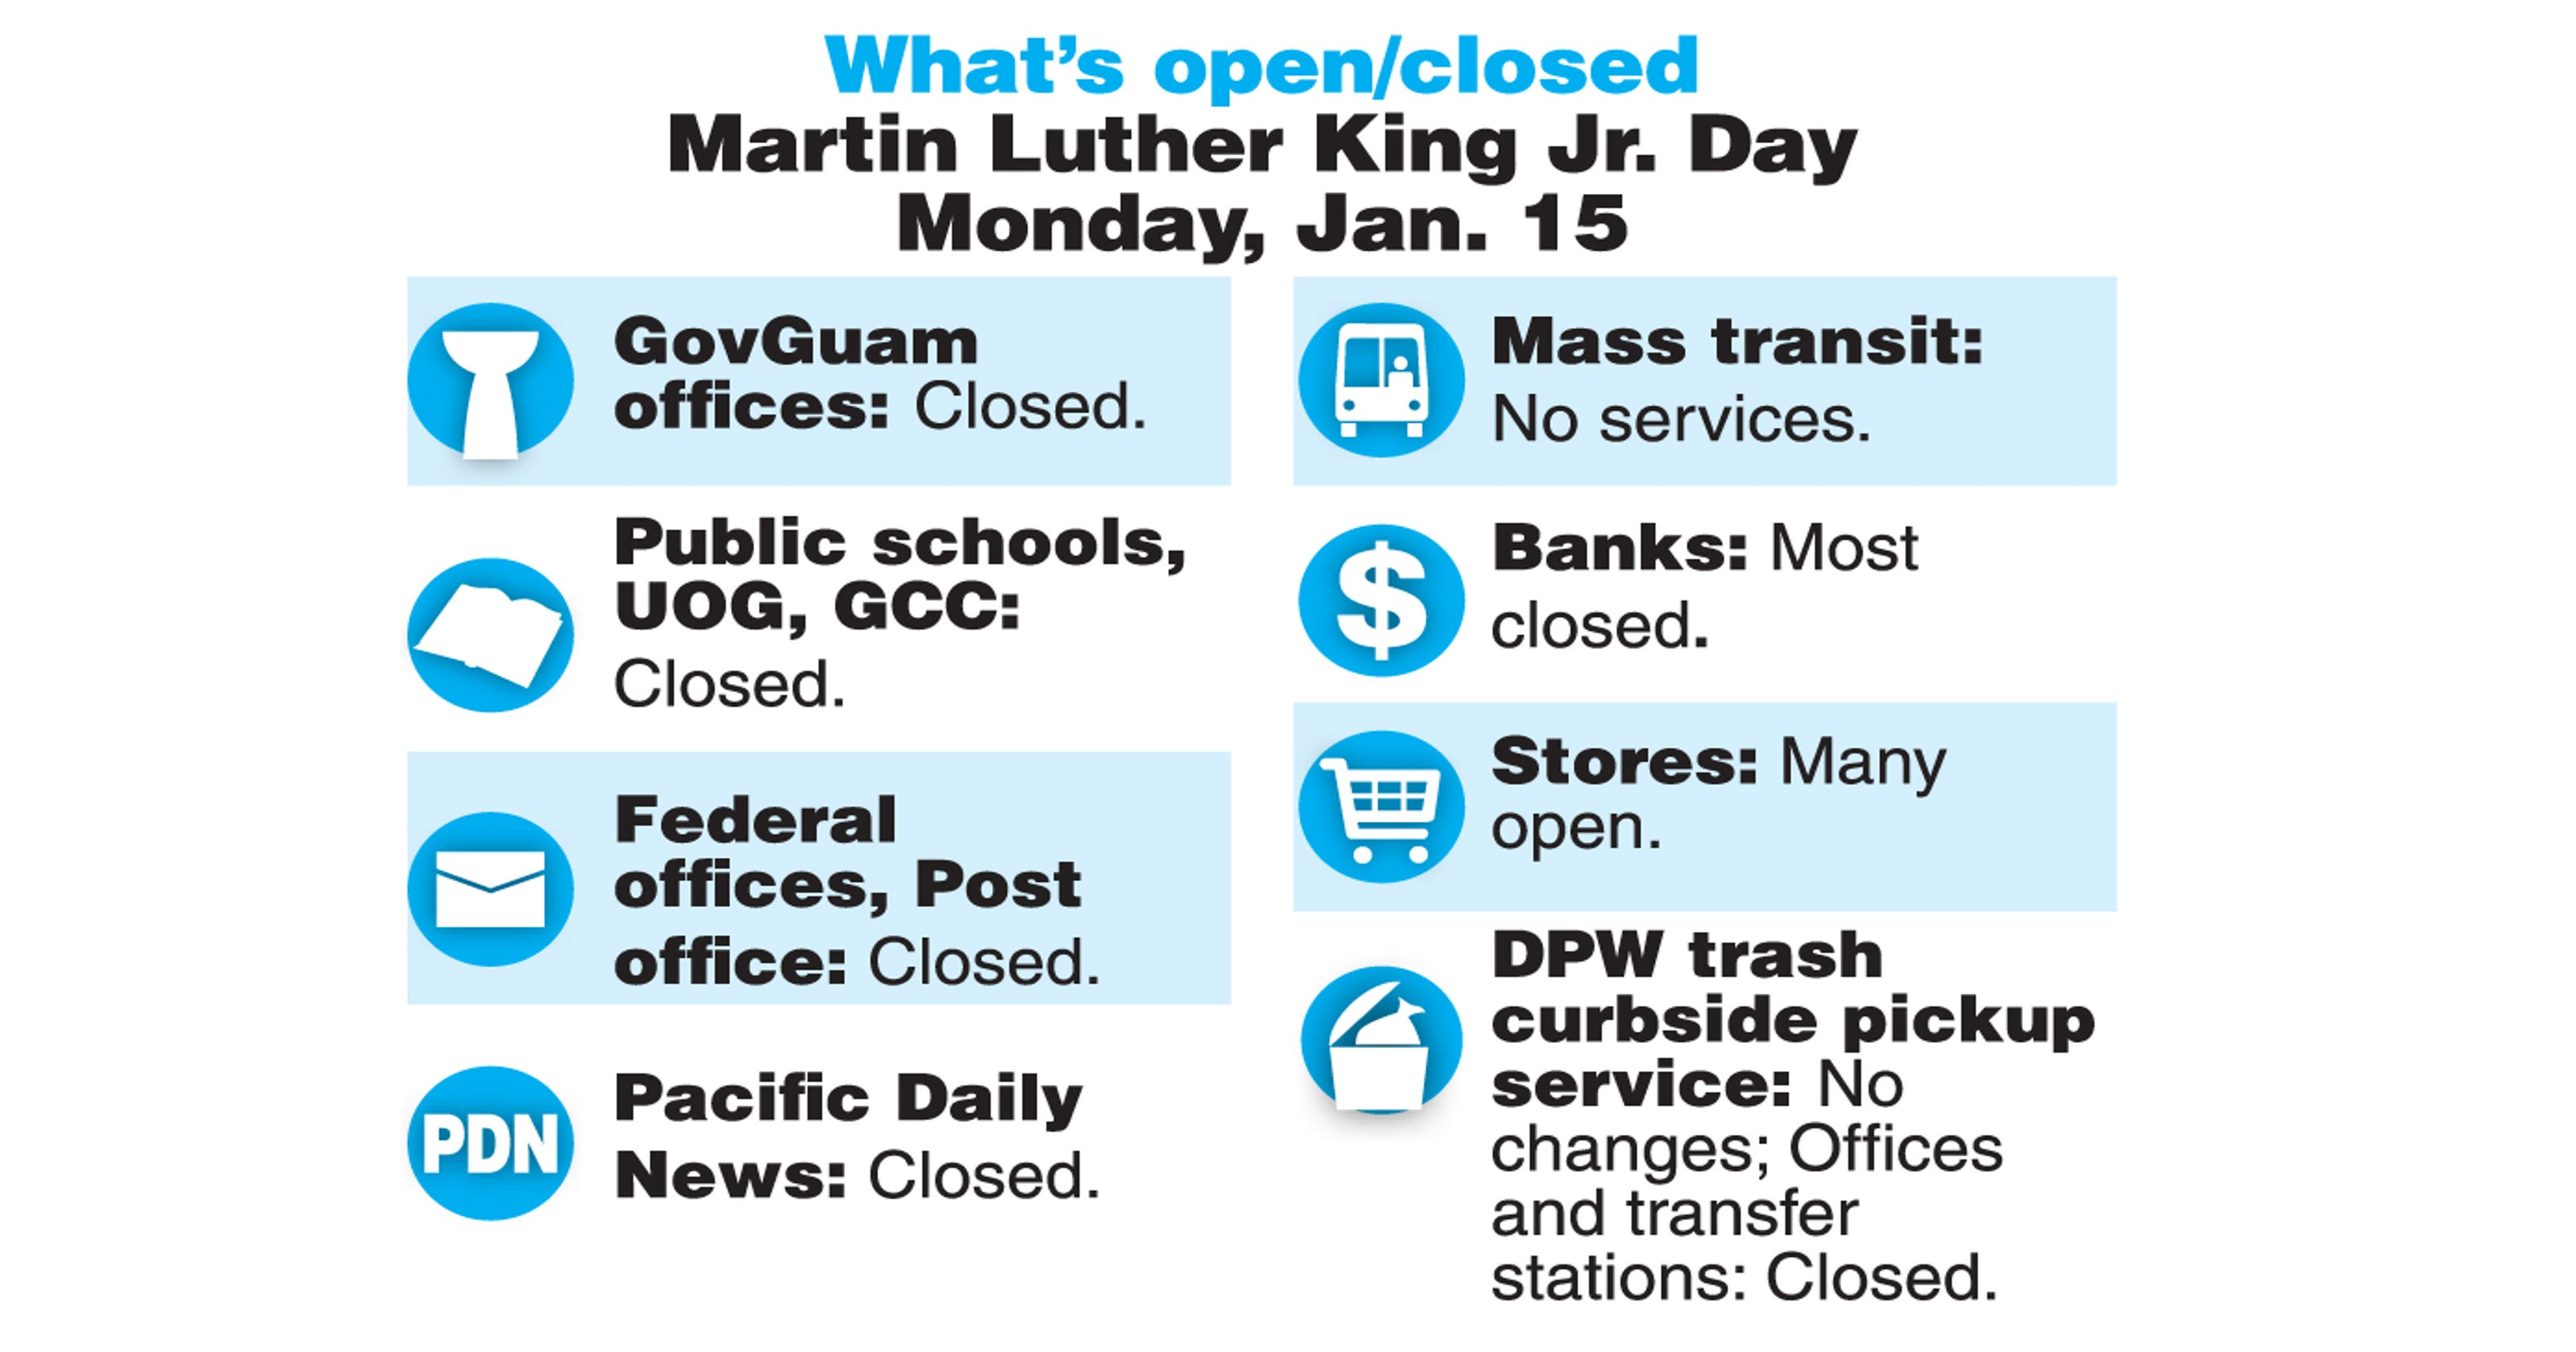 whats openclosed on guam on martin luther king jr day 2018